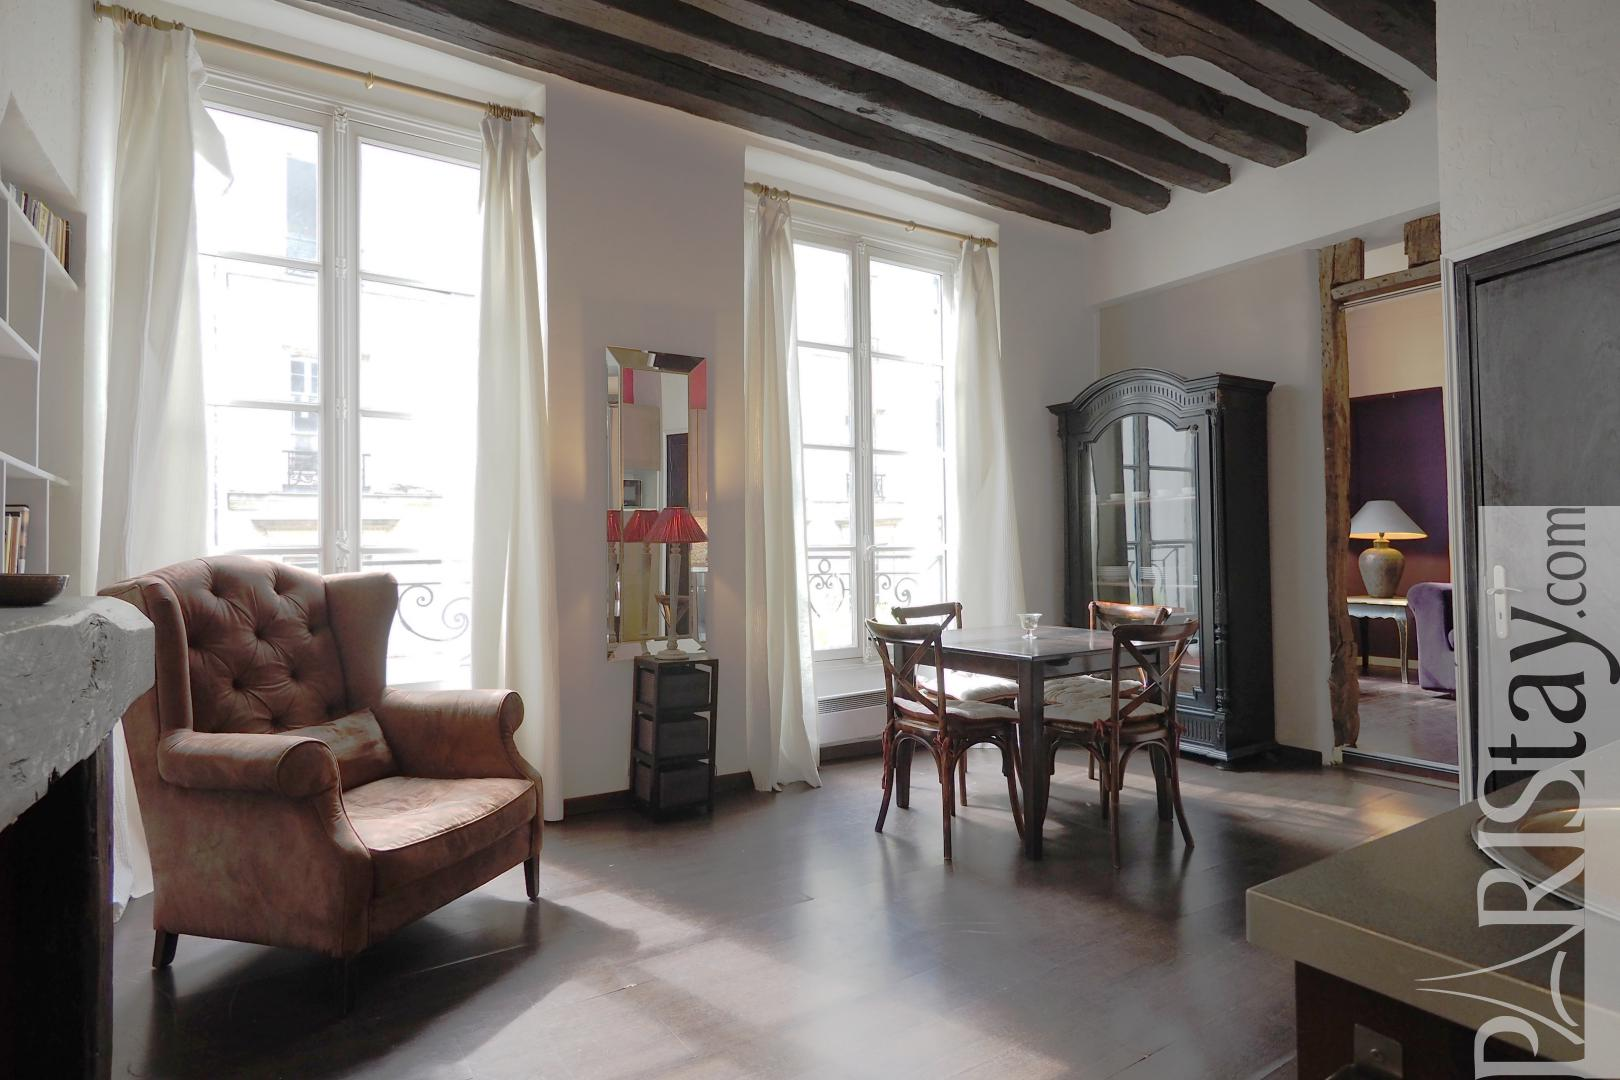 Location longue duree paris le marais appartement t3 meuble for Location appartement atypique paris